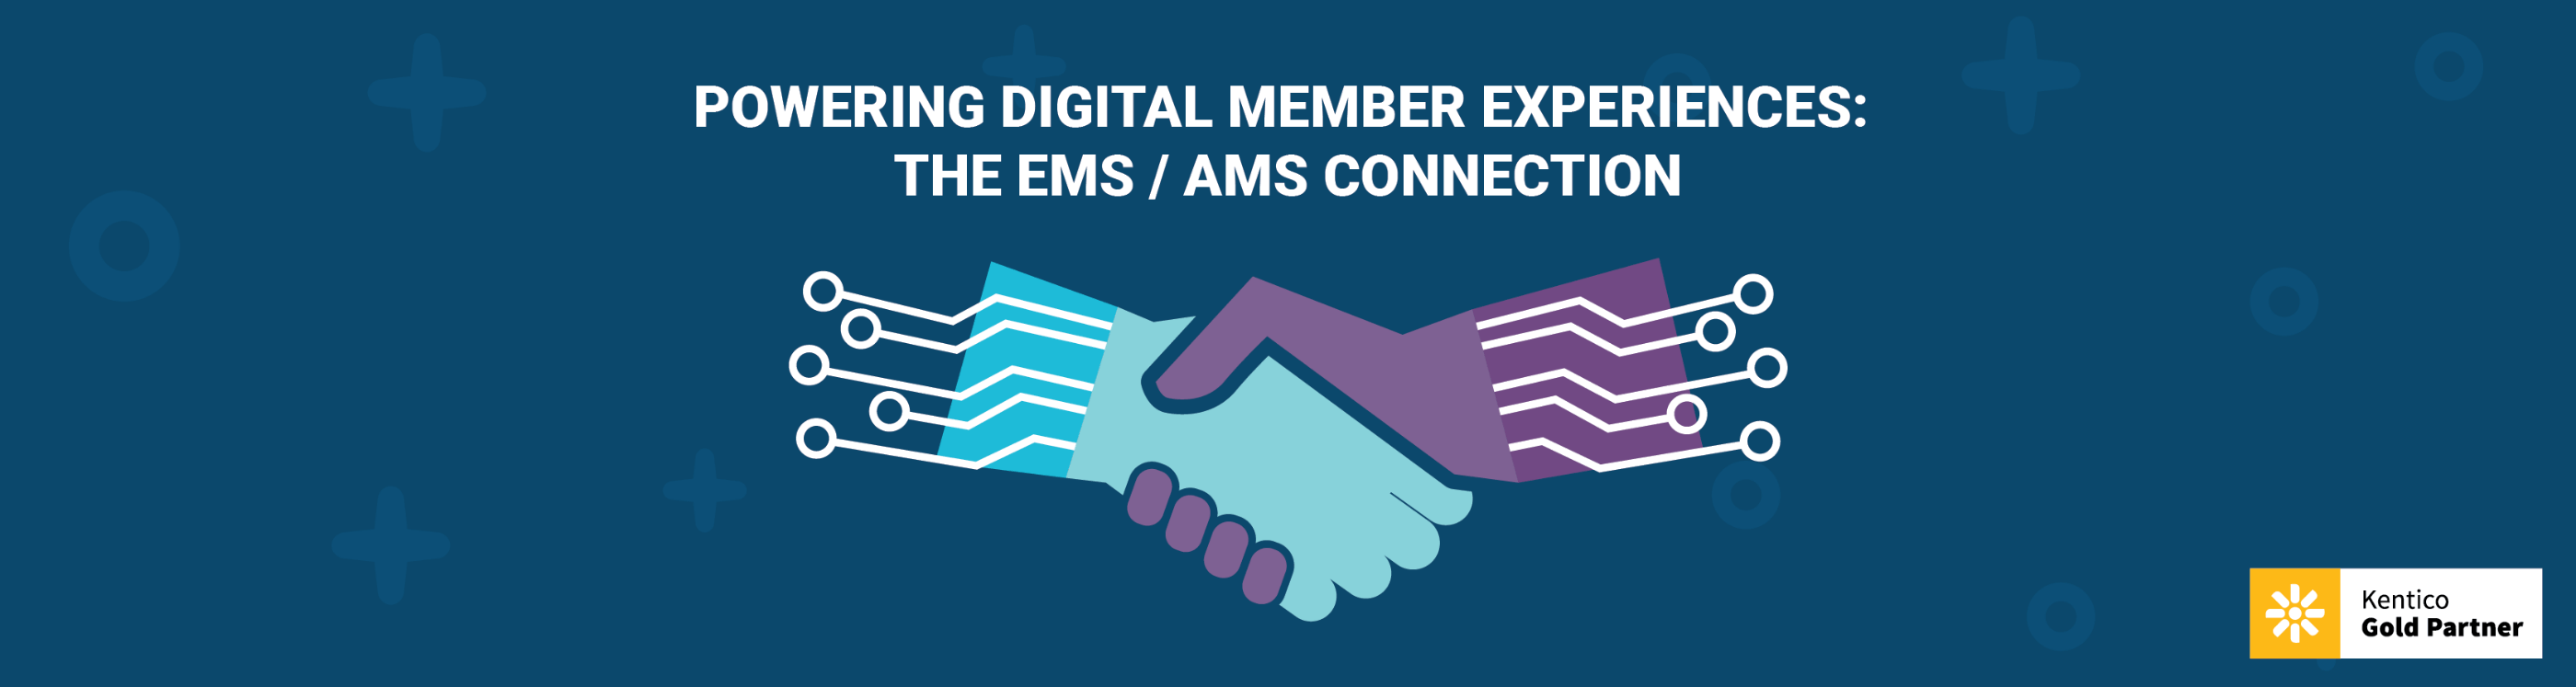 Powering Digital Member Experiences: The EMS / AMS Connection